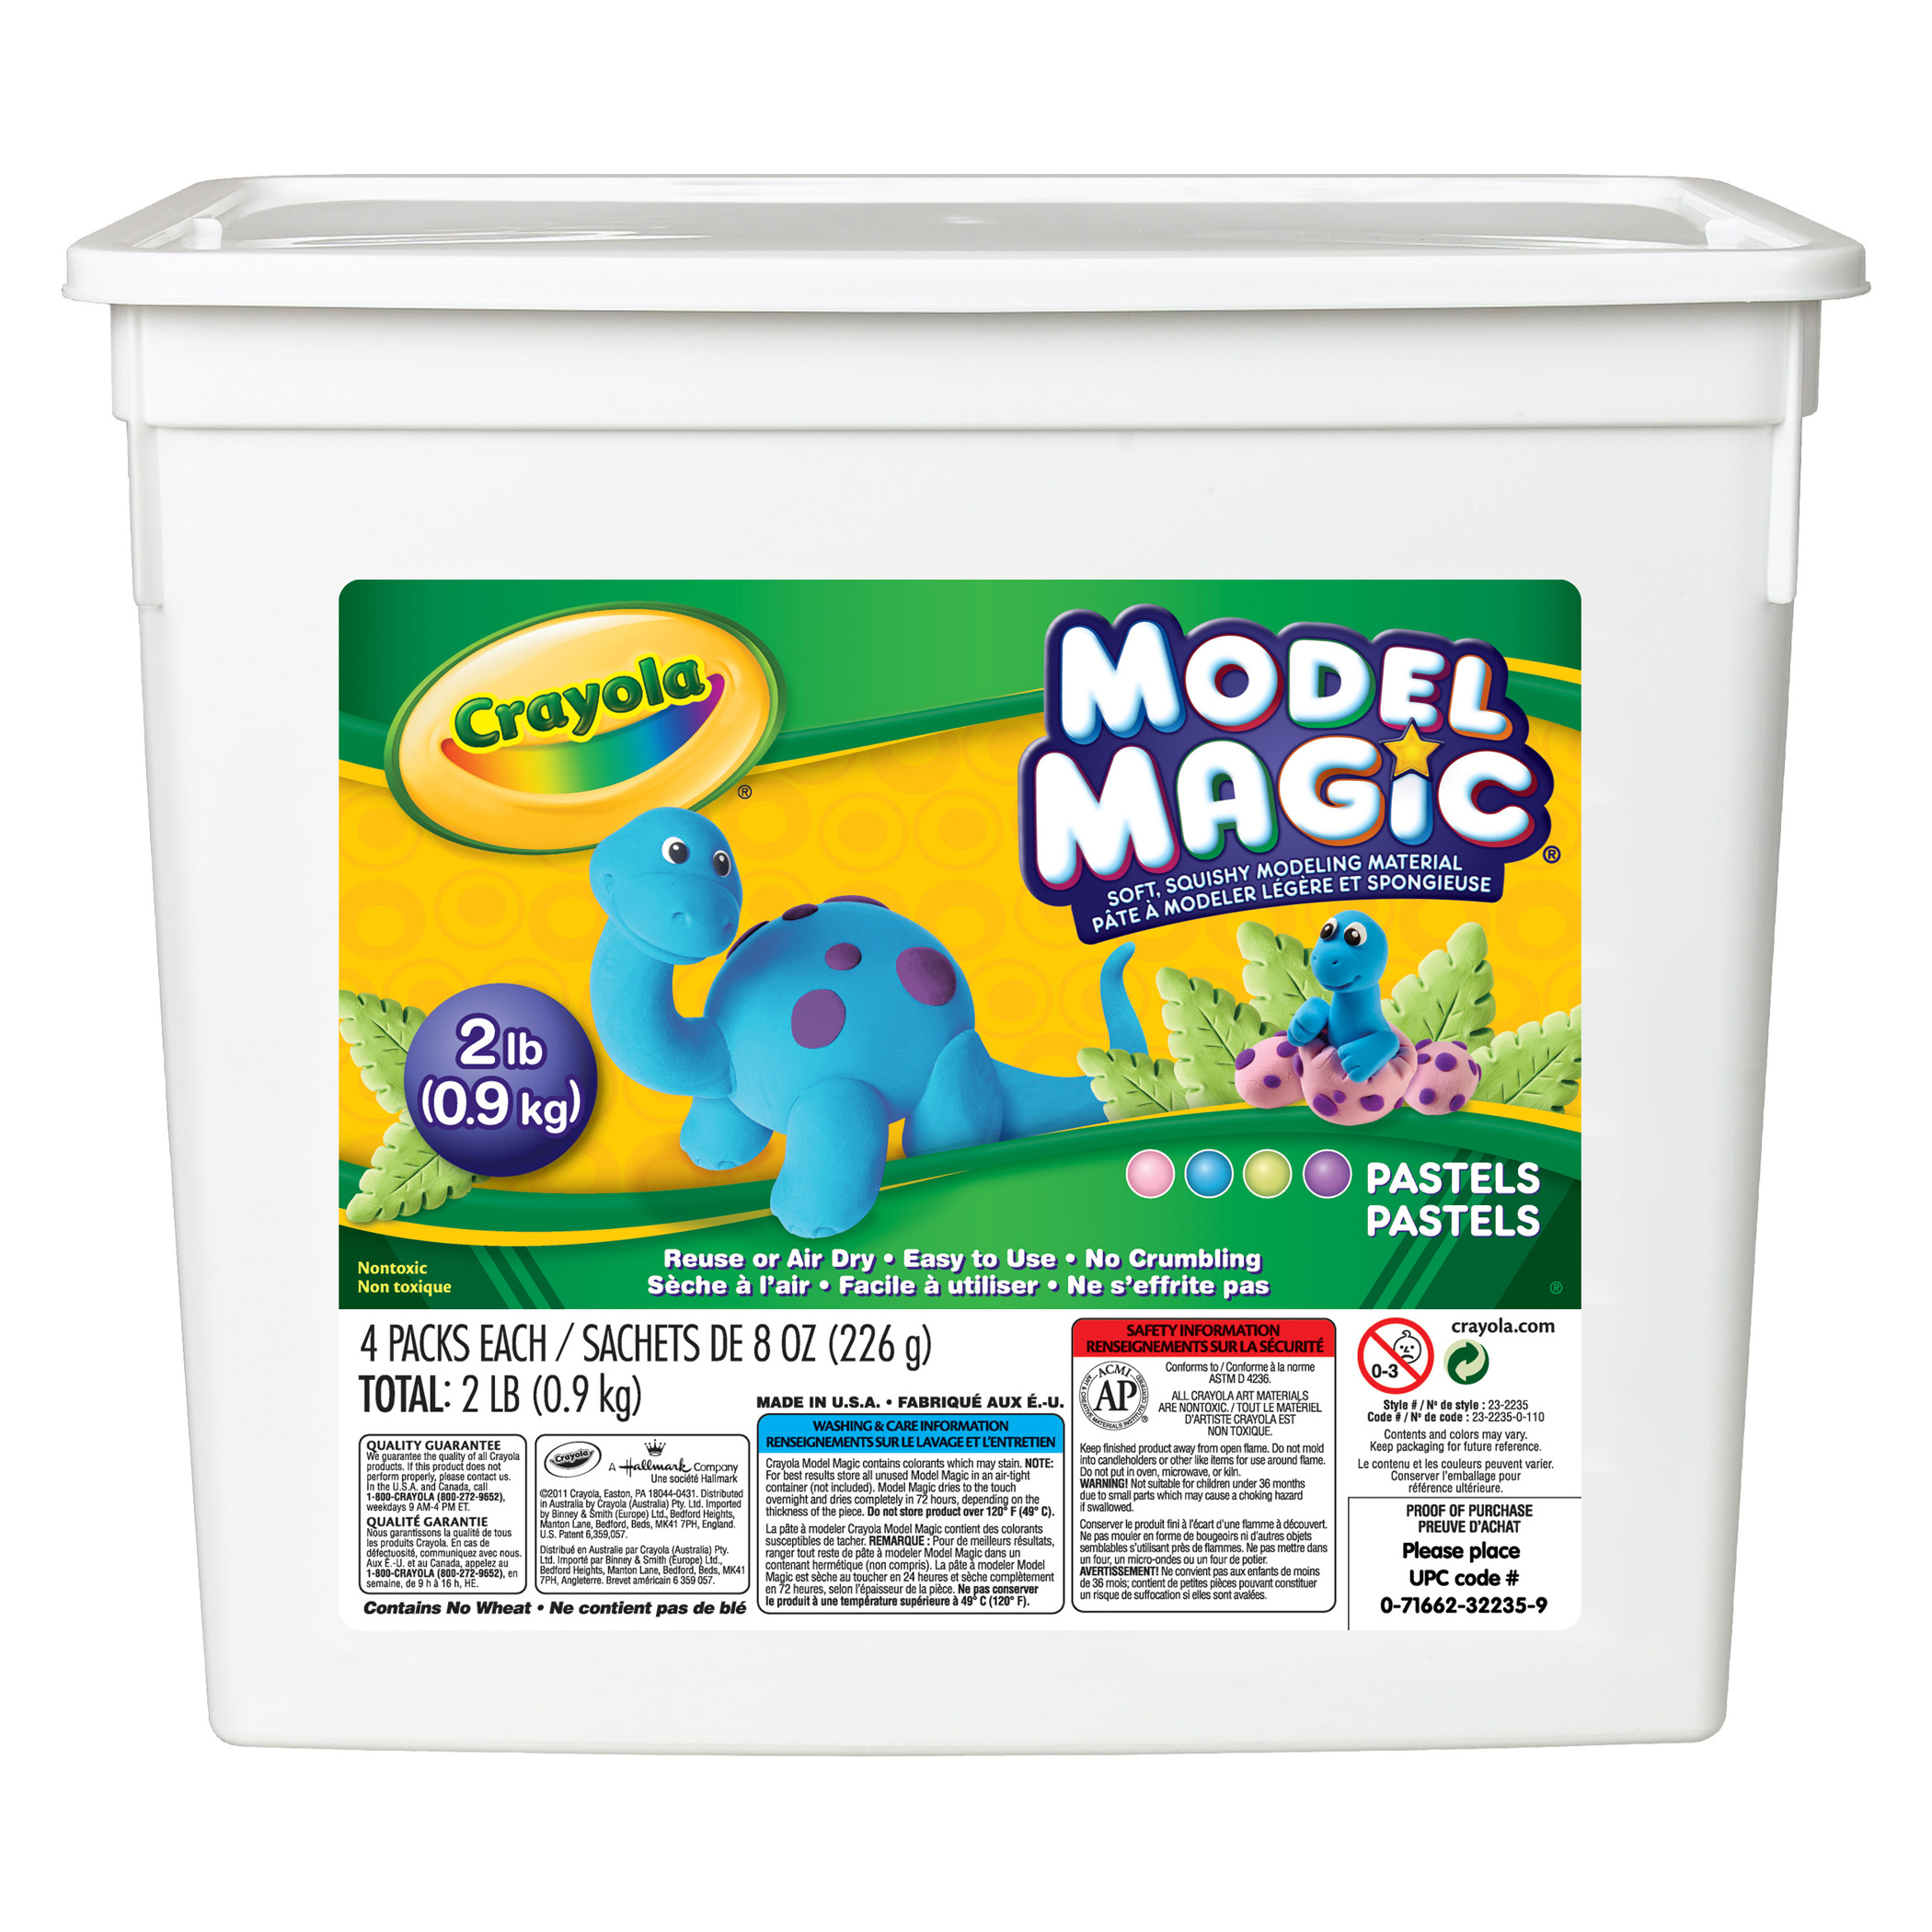 Crayola® Model Magic Pastel Bucket, 2 Lb